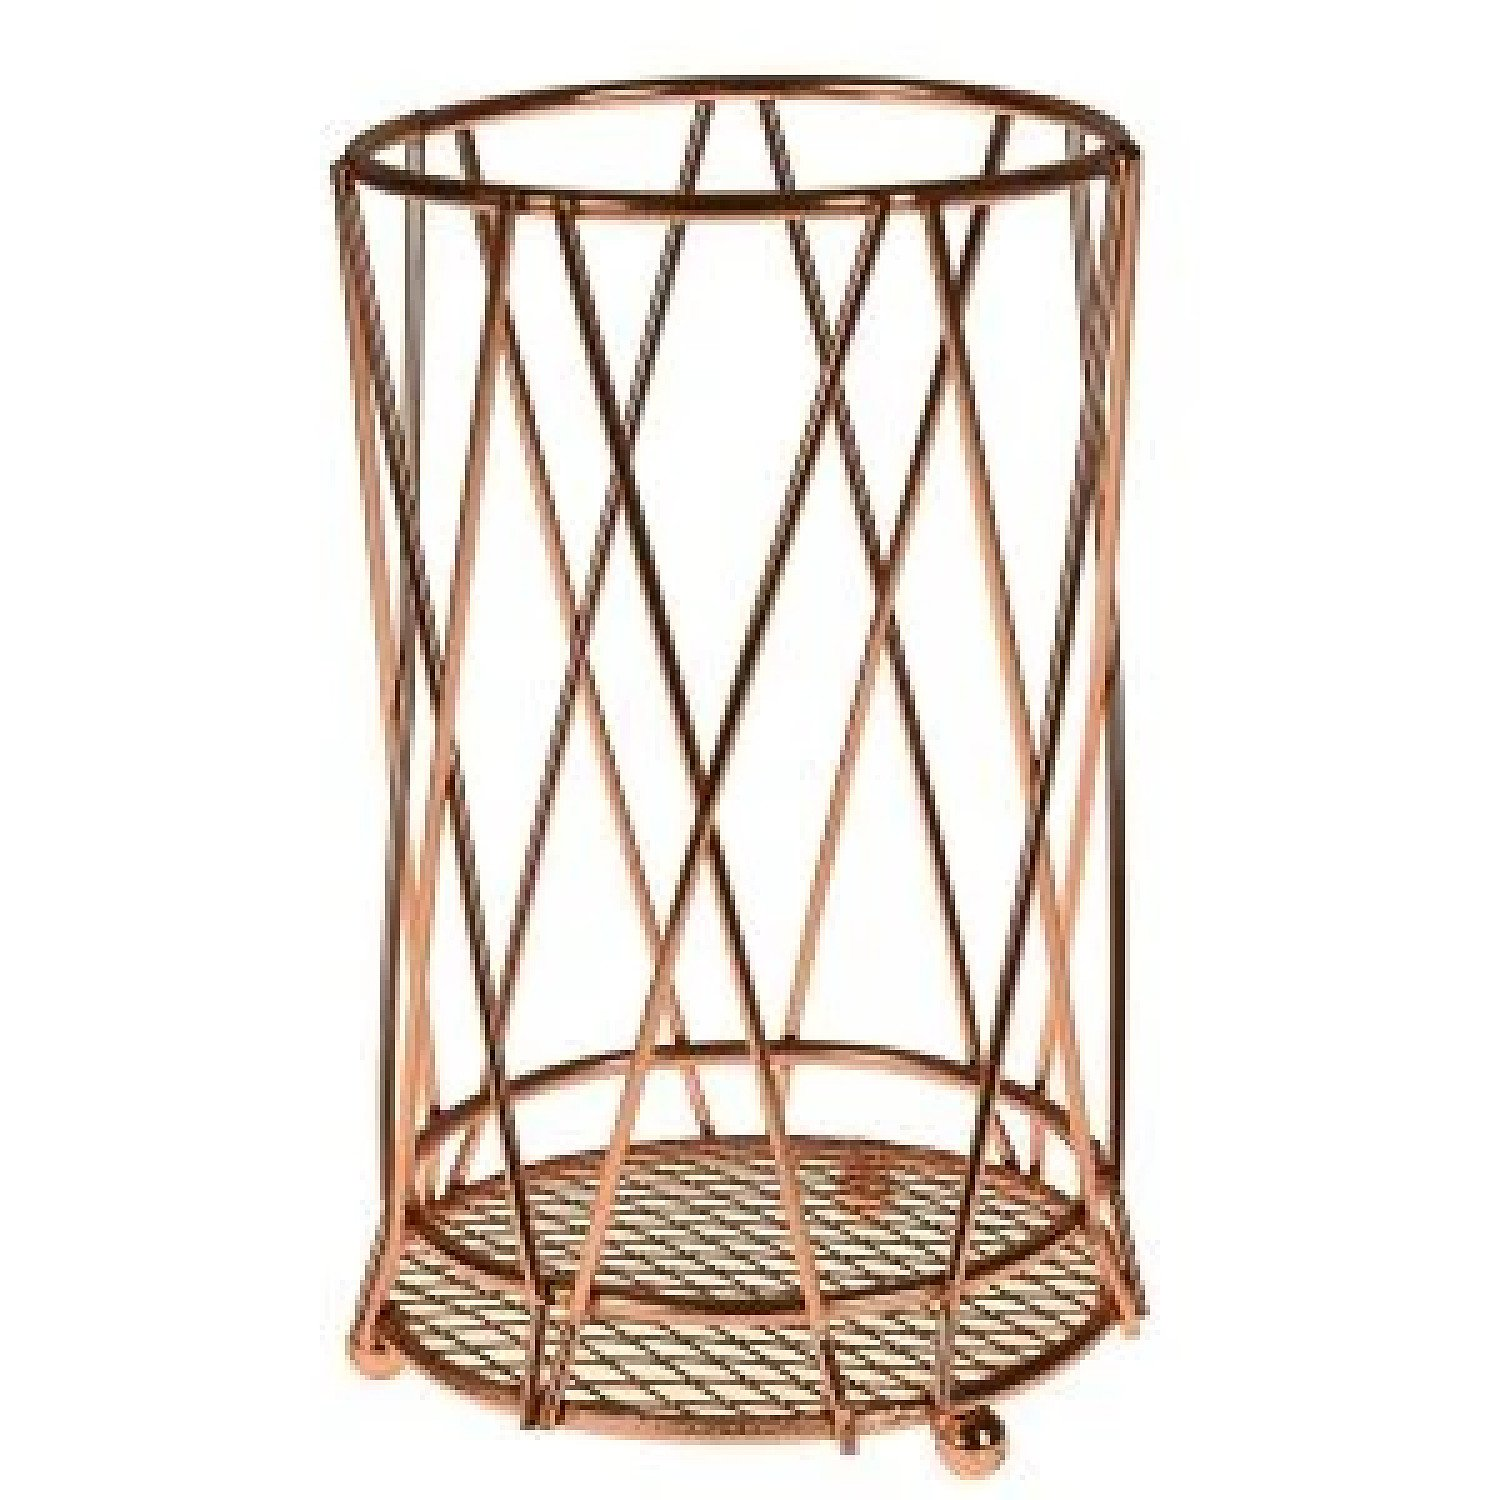 Copper Kitchen Accessory Set Fruit Basket Utensil Roll Holder Iron Wire Stand £9.99 Free Postage